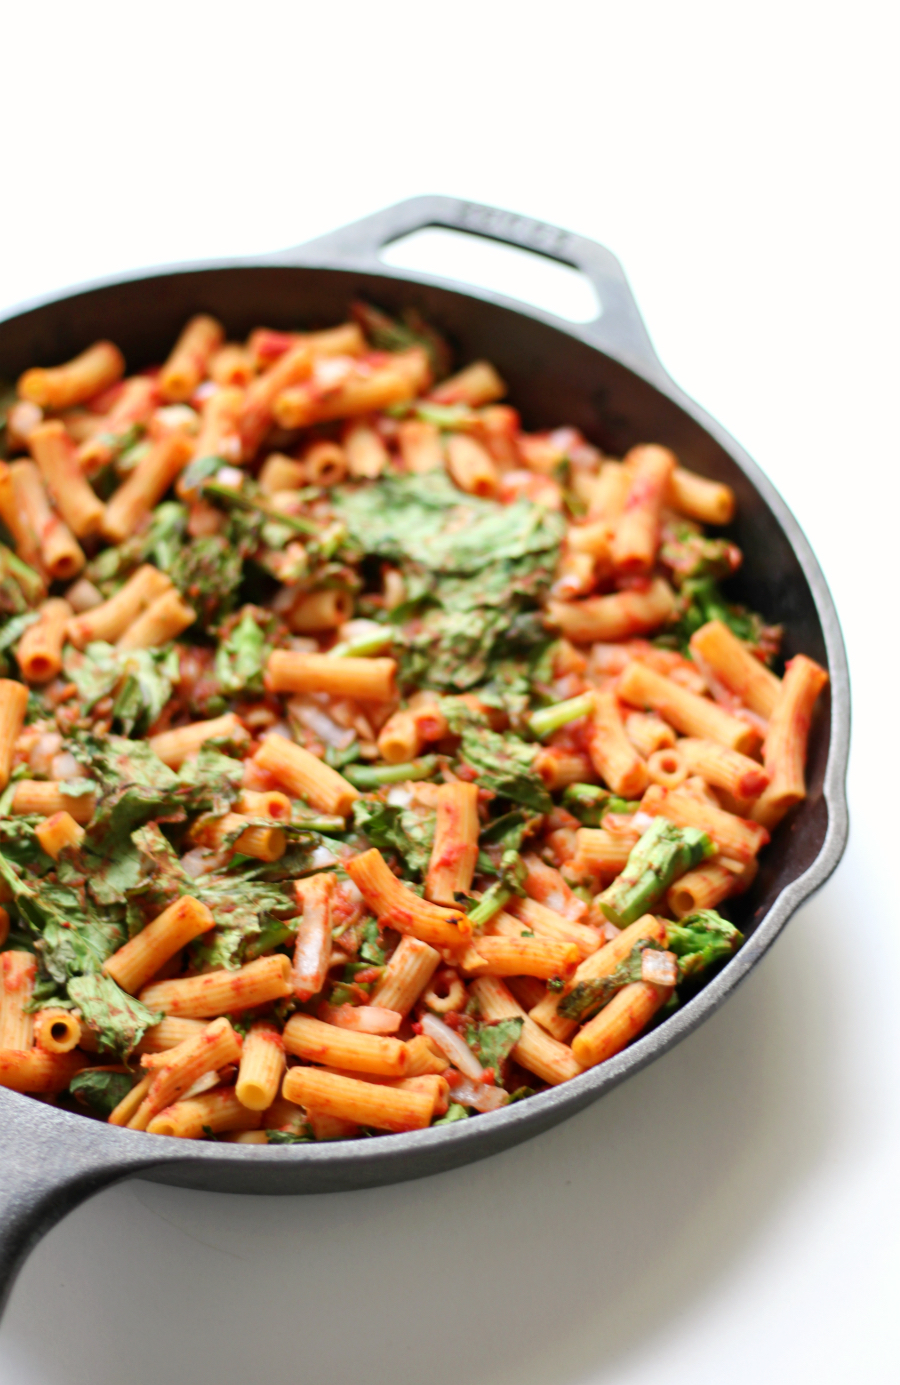 Sweet Tomato & Broccoli Rabe Baked Penne (Gluten-Free, Vegan, Allergy-Free) | Strength and Sunshine @RebeccaGF666 A delicious weeknight pasta dinner recipe the whole family will love! Sweet Tomato & Broccoli Rabe Baked Penne that's gluten-free, vegan, and allergy-free. Packed with flavor and nutritious veggies, this healthy meal will be an easy new favorite!